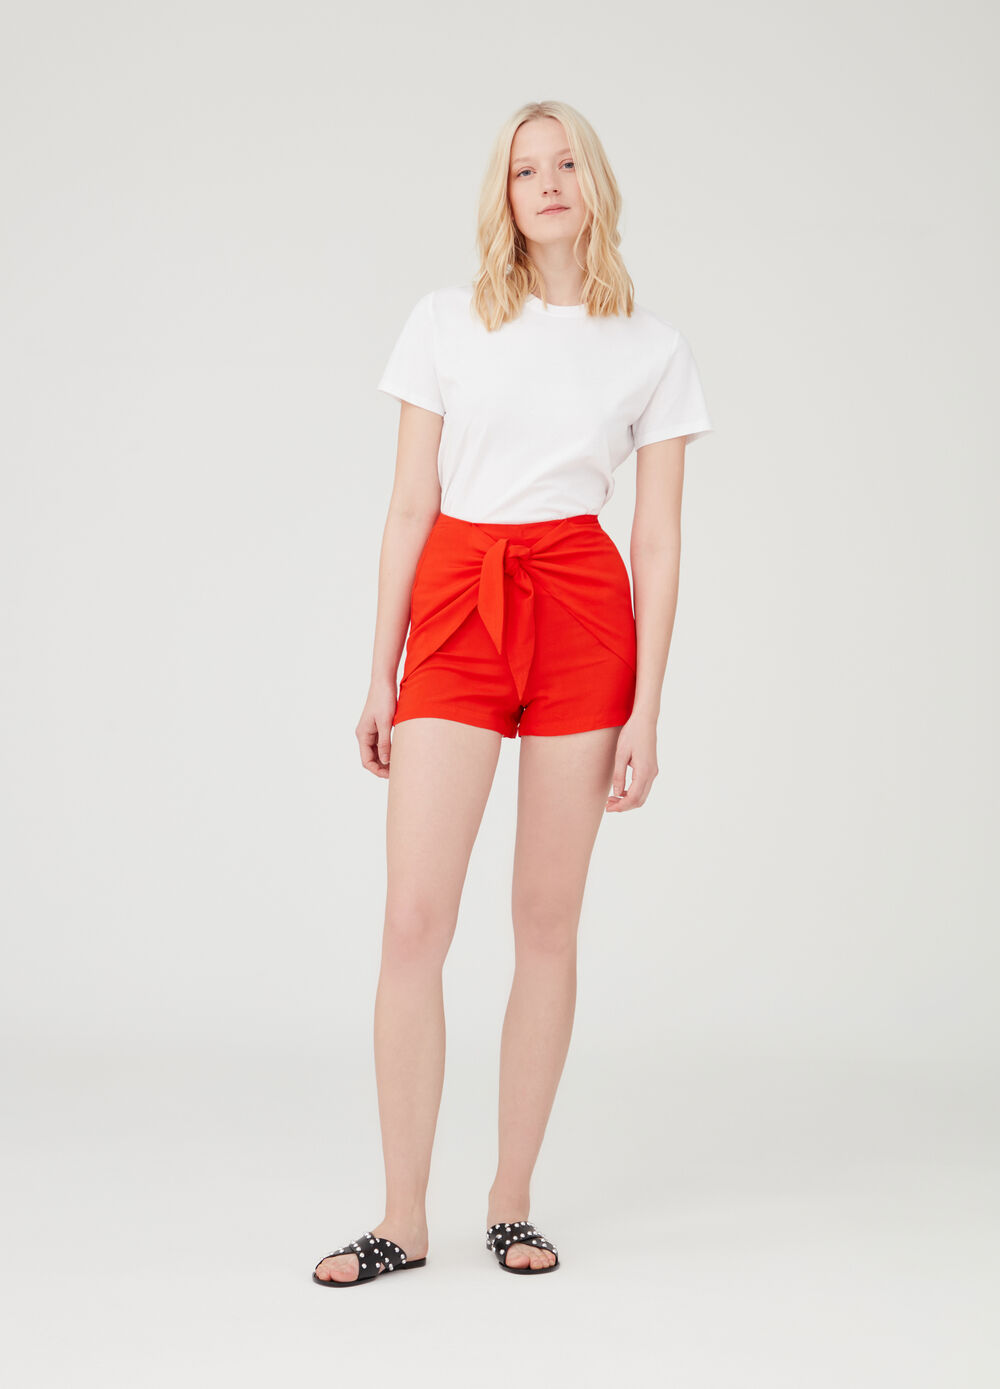 Shorts in 100% viscose with side inserts.